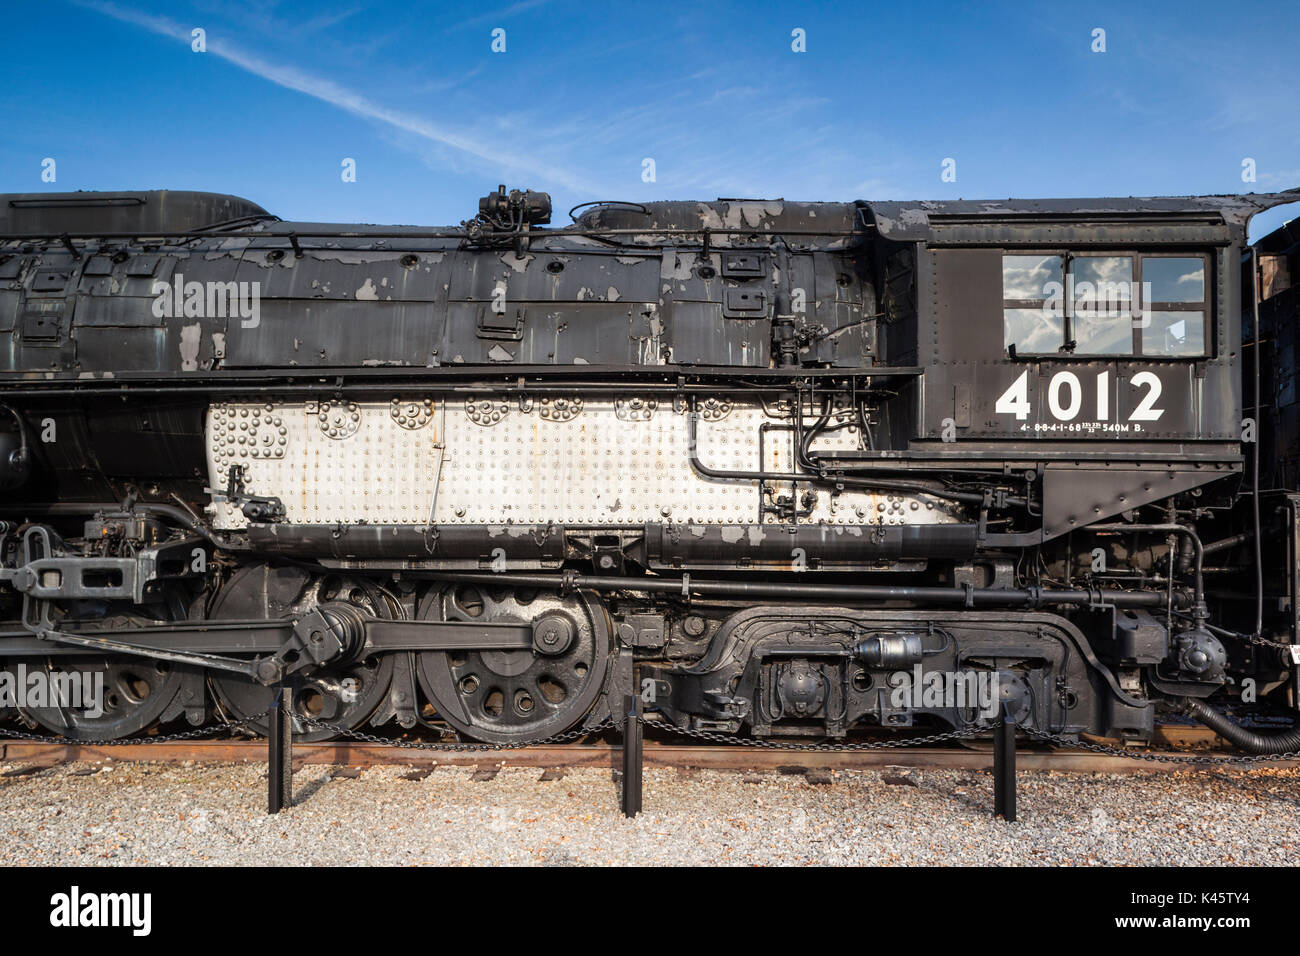 USA, Pennsylvania, Scranton,  Steamtown National Historic Site, Union Pacifc Locomotive 4012, one of the world's Stock Photo